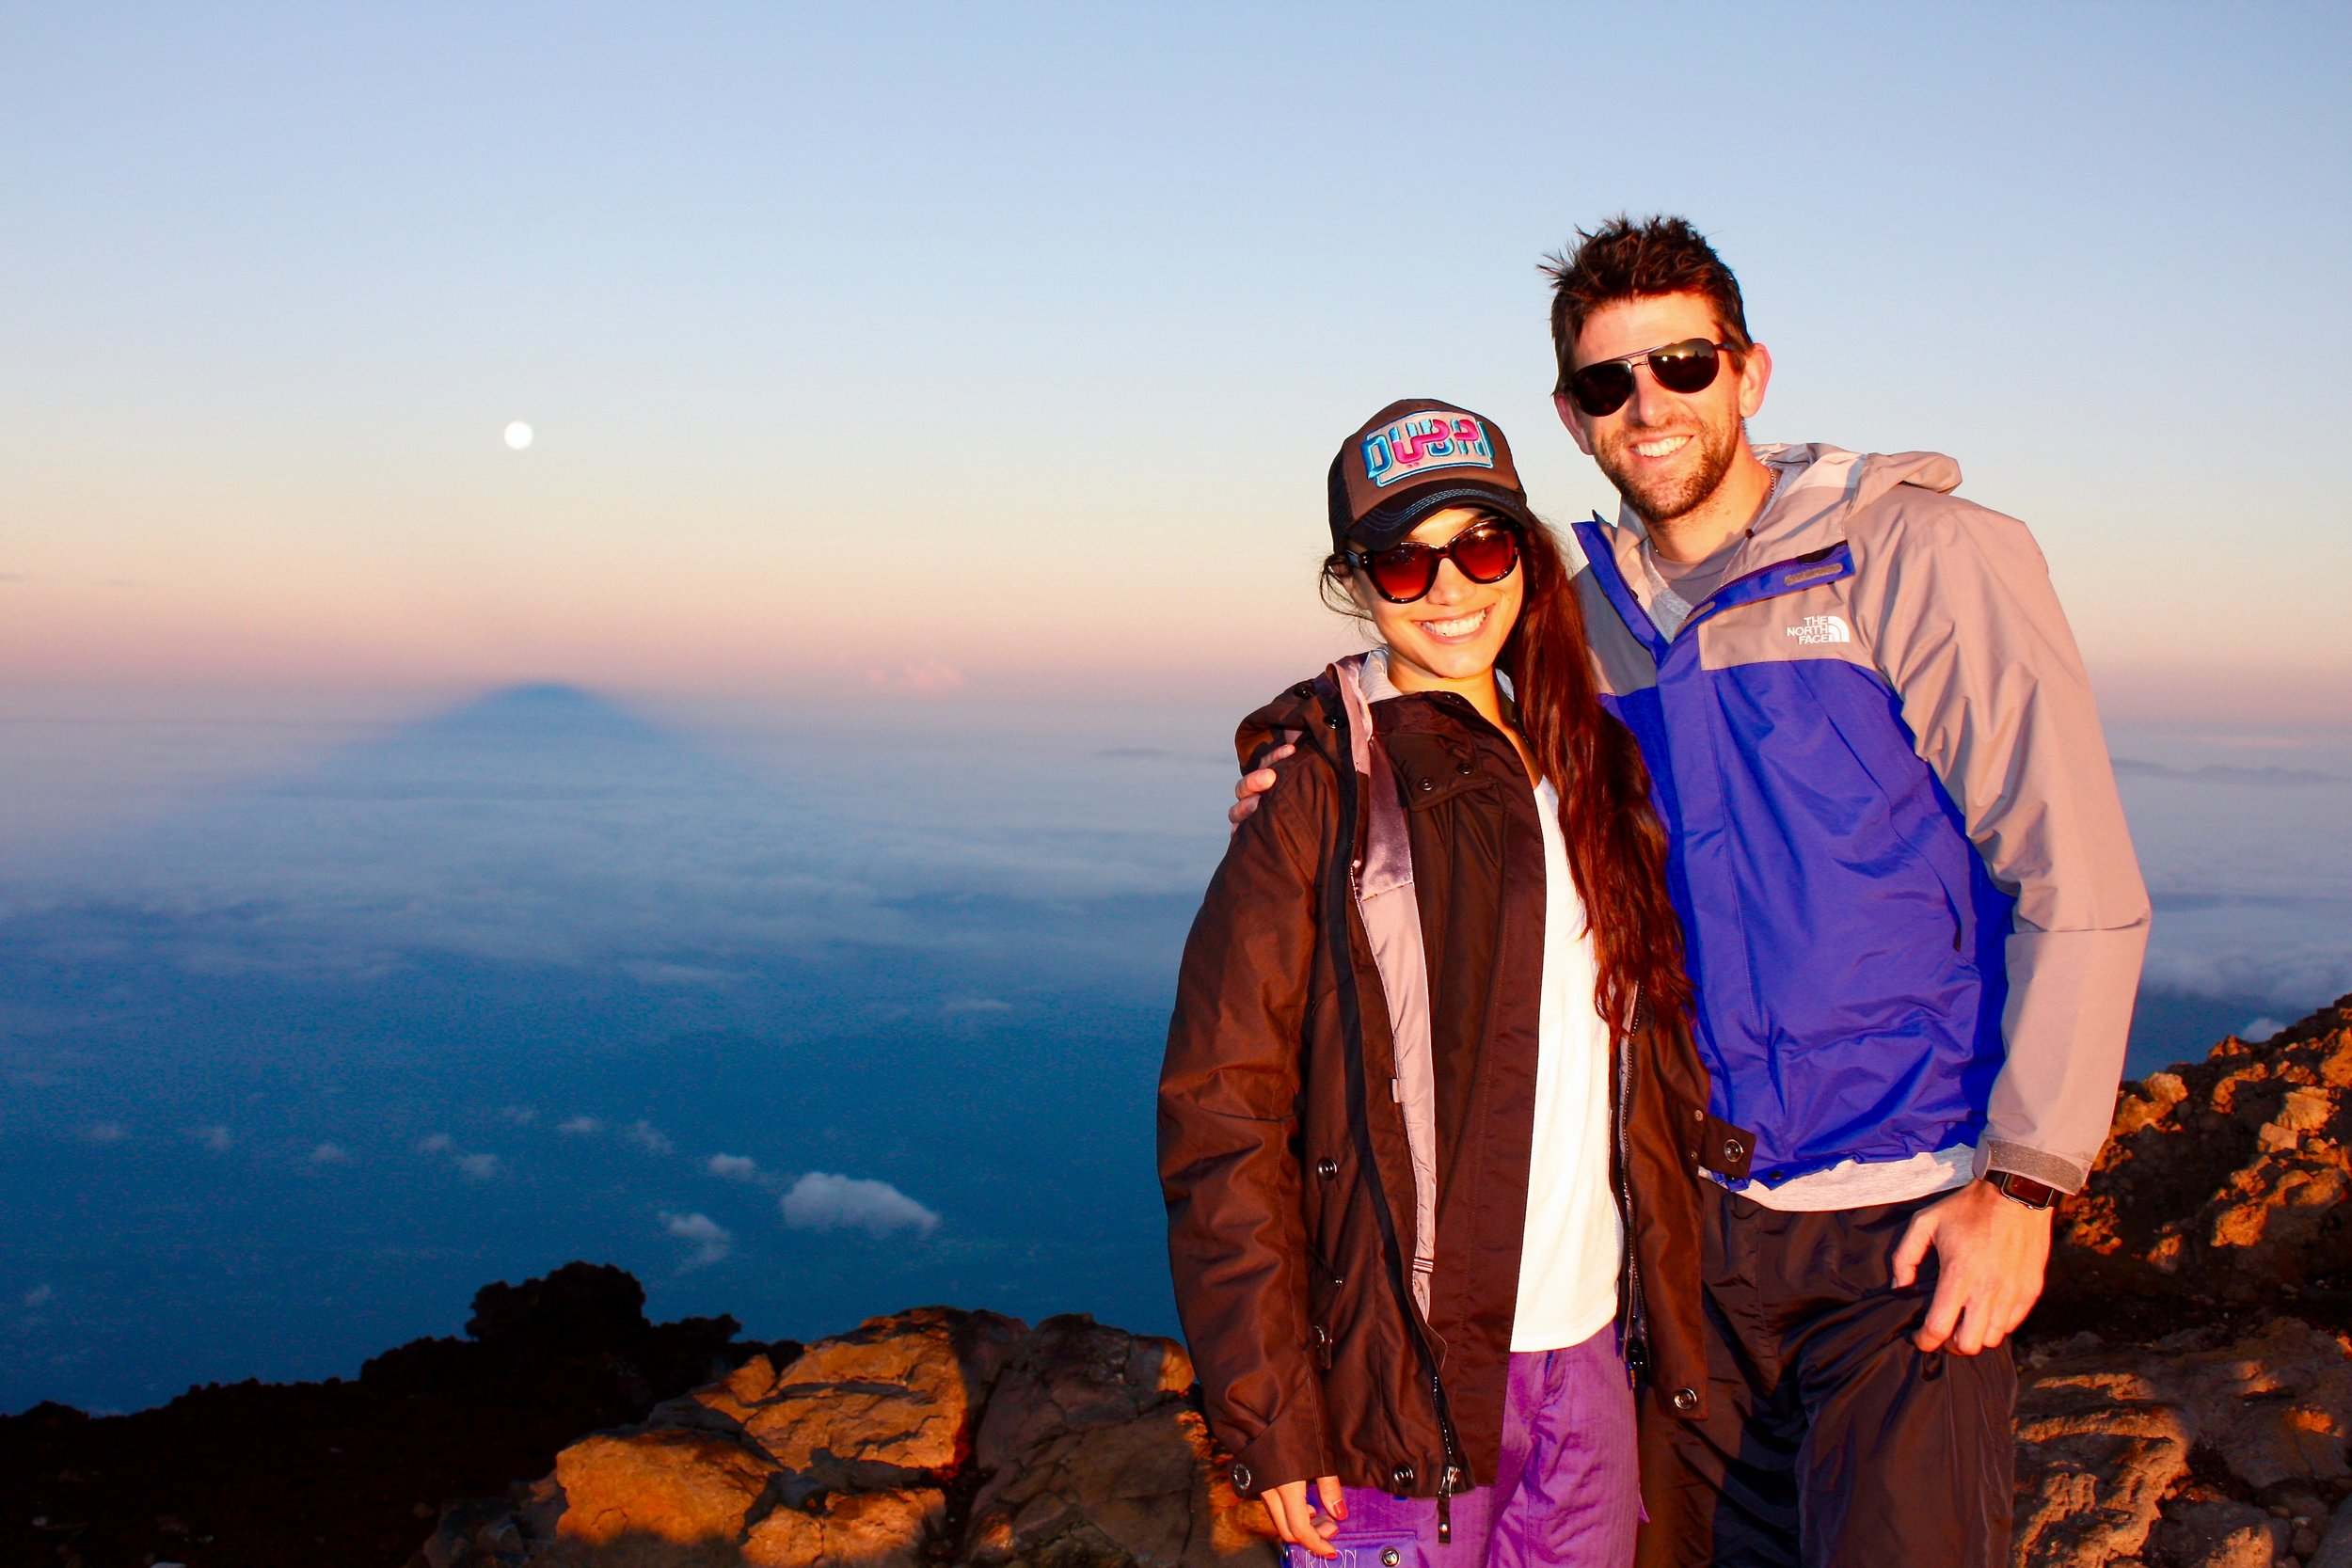 Sunrise at the summit of Mount Fuji